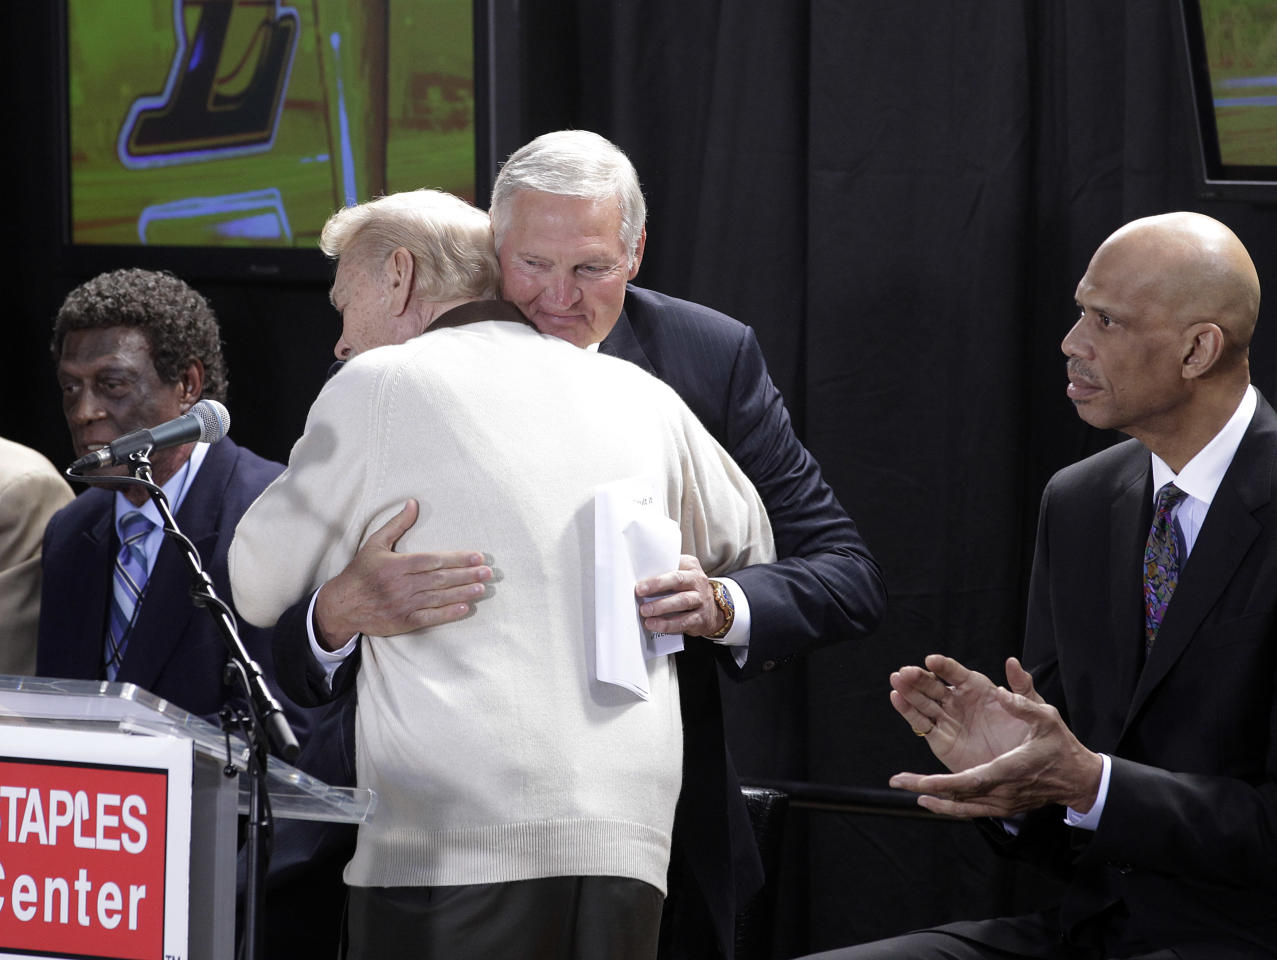 Former Laker Jerry West, center facing camera, hugs Los Angeles Lakers owner Jerry Buss as they are joined by former Lakers Elgin Baylor, left, and Kareem Abdul-Jabbar during the unveiling ceremony of a statue of West outside Staples Center in Los Angeles, Thursday, Feb. 17, 2011.